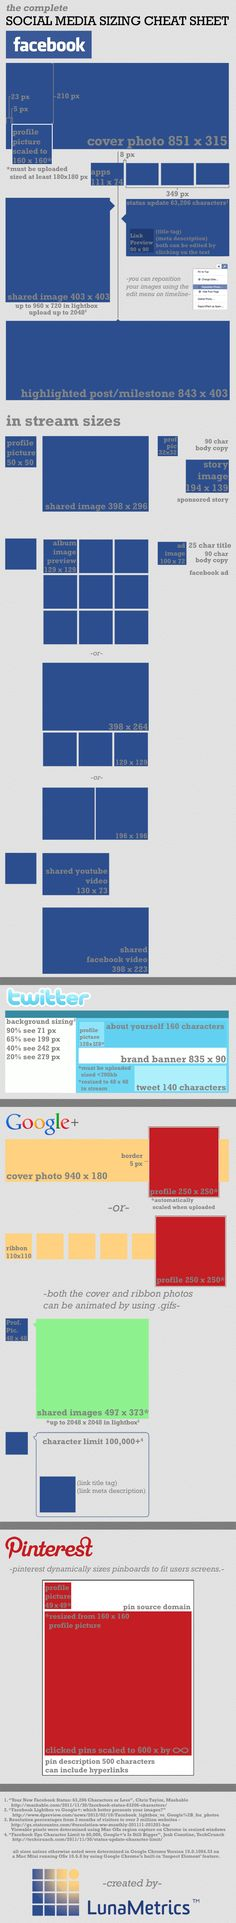 Complete Social Media Sizing Cheat Sheet [INFOGRAPHIC]